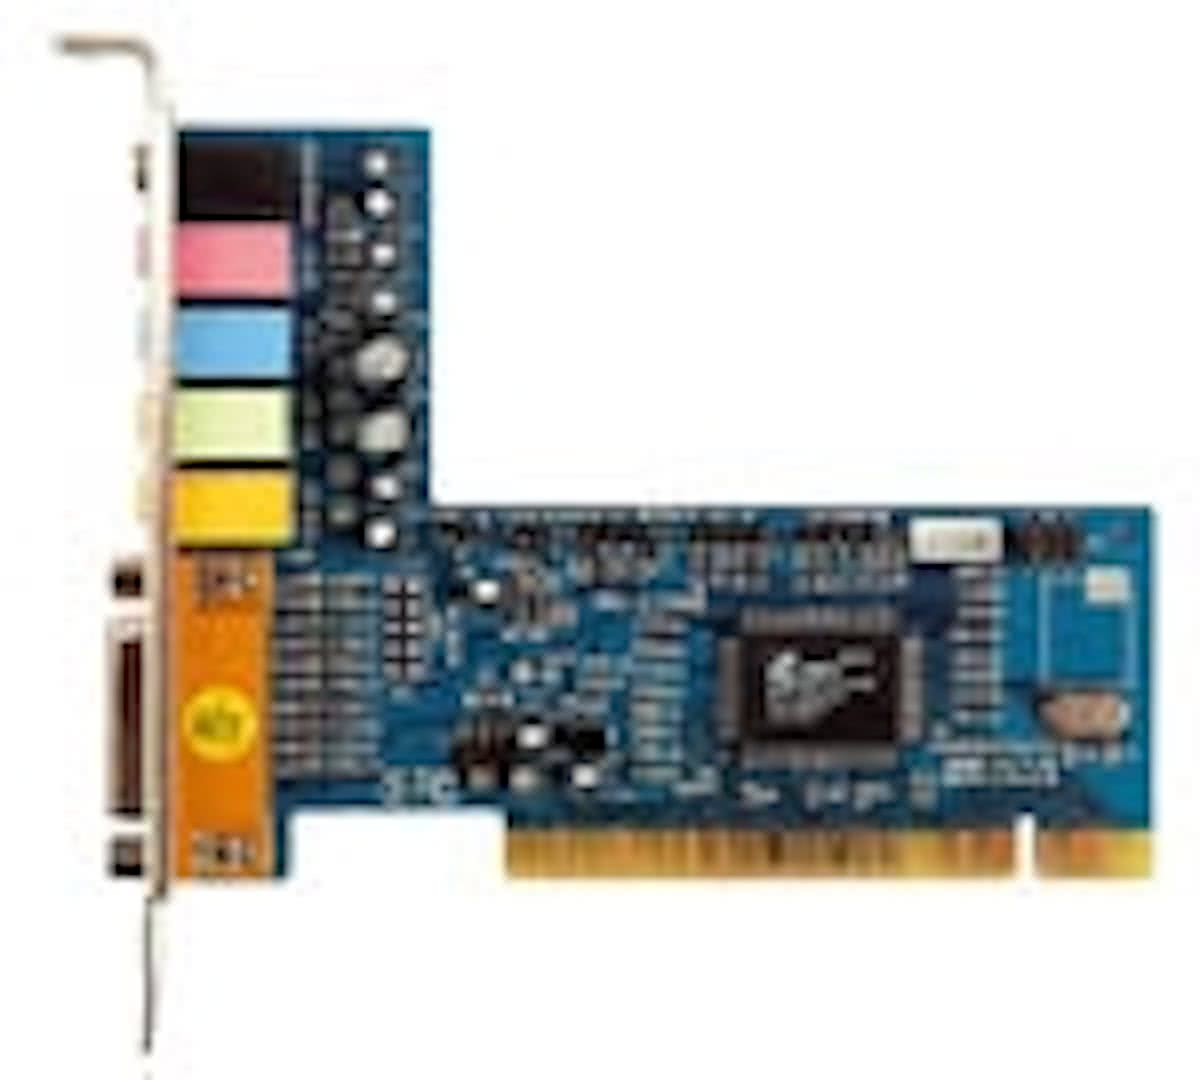 6-channel sound card PCI